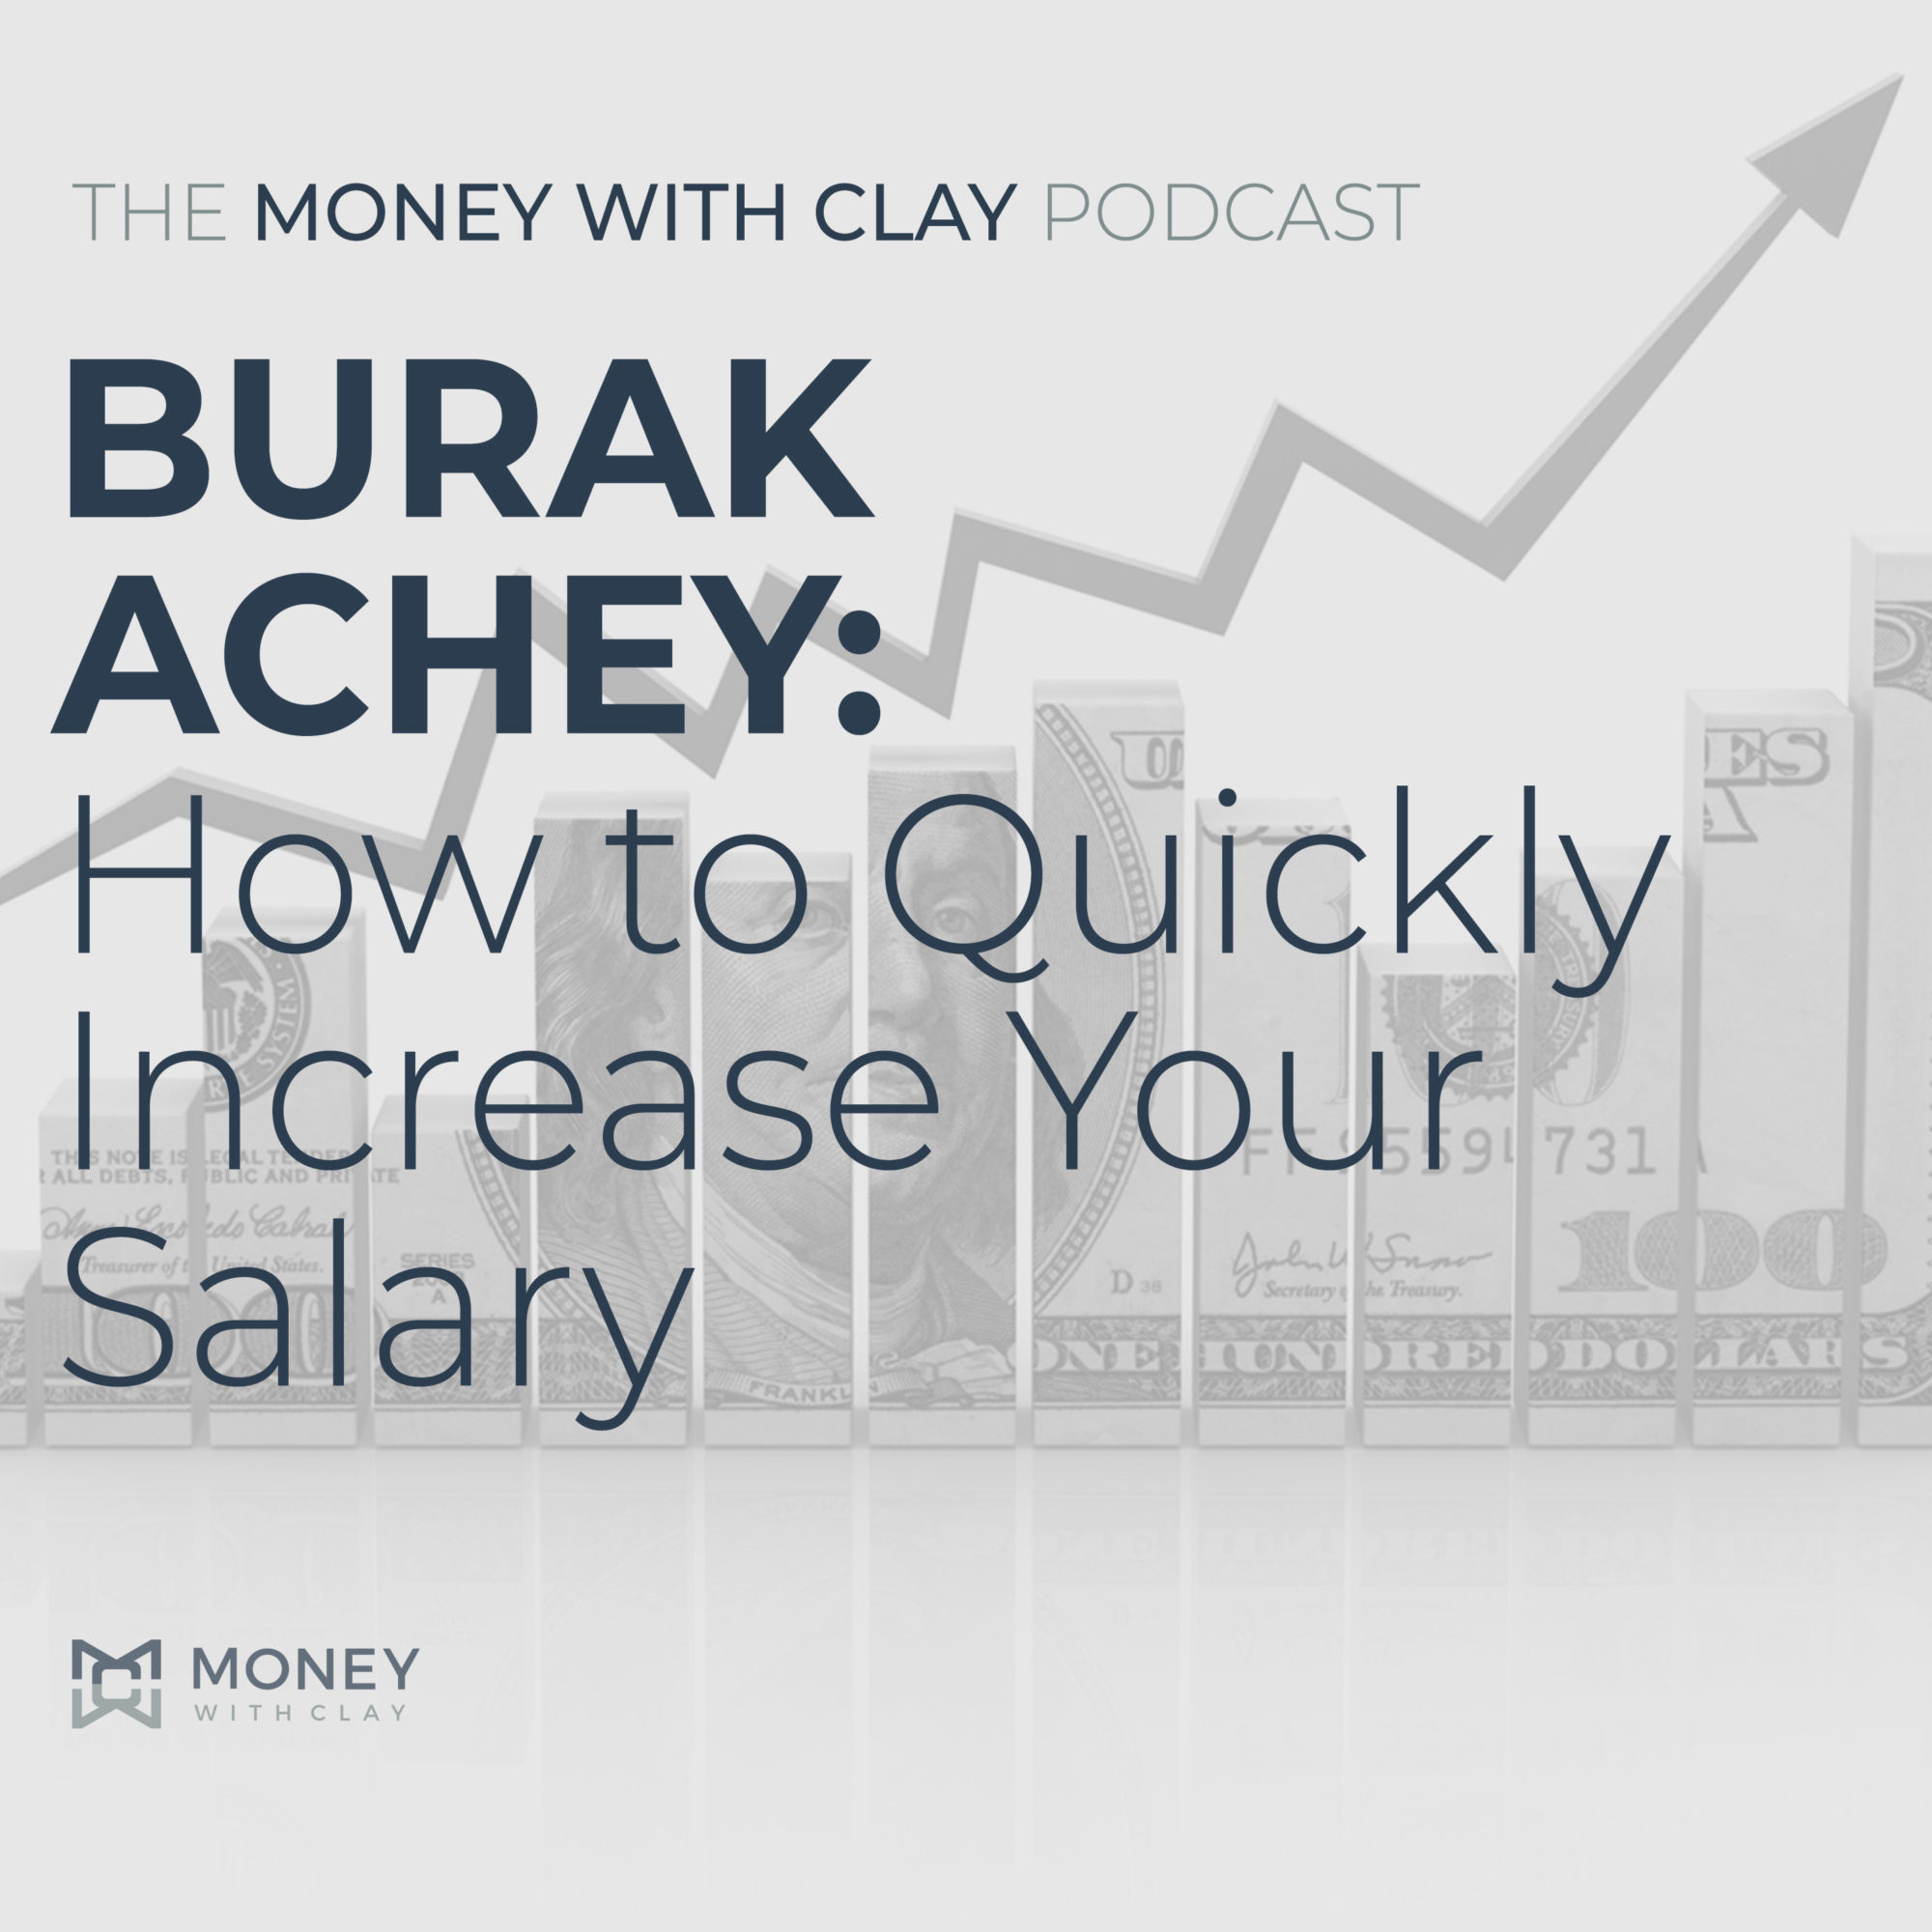 Burak Achey: How to Quickly Increase Your Salary